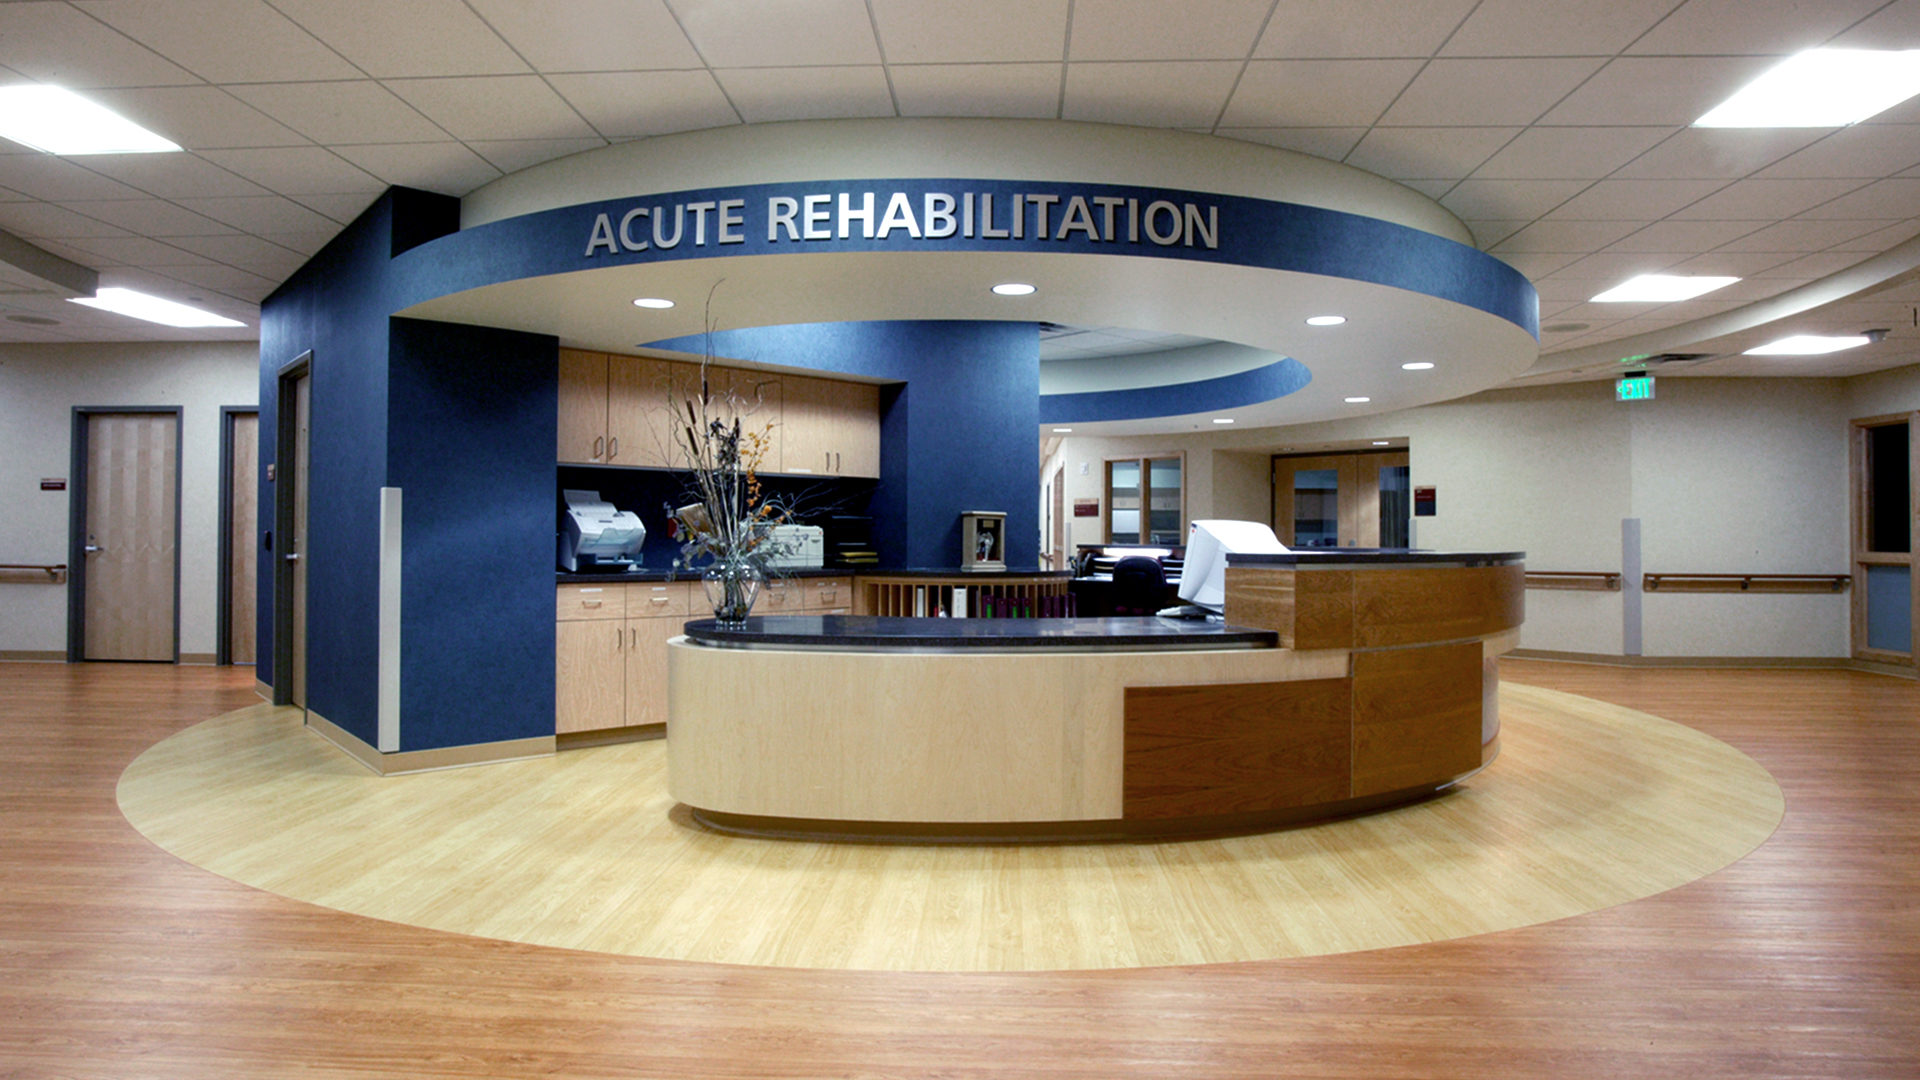 Grand Itasca Clinic & Hospital Acute Rehabilitation Information Station